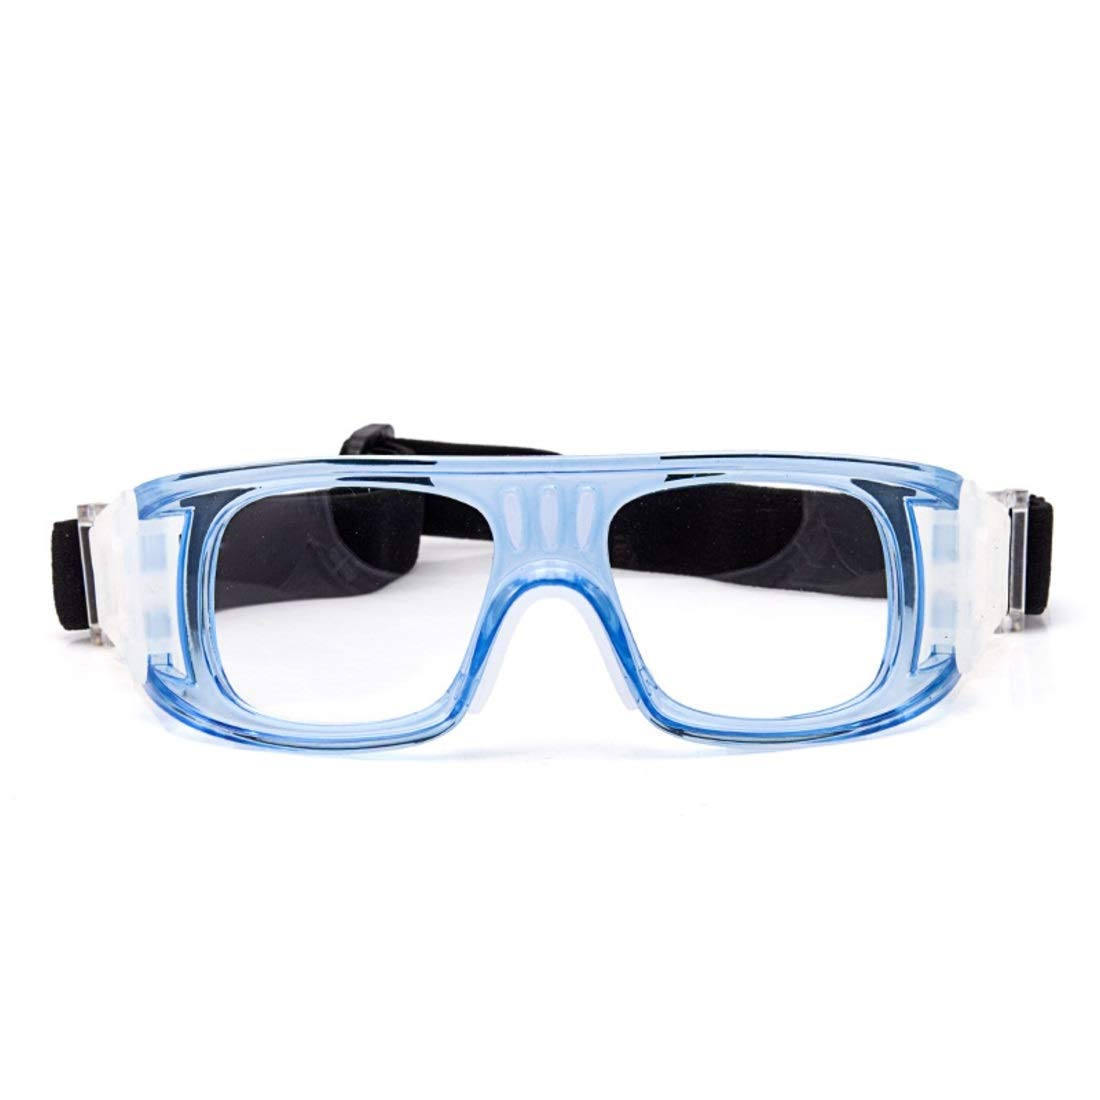 BAOYIT Cycling Glasses Outdoor Sports Windproof Mountain Bike Sunglasses Men and Women (Color : Blue) by BAOYIT